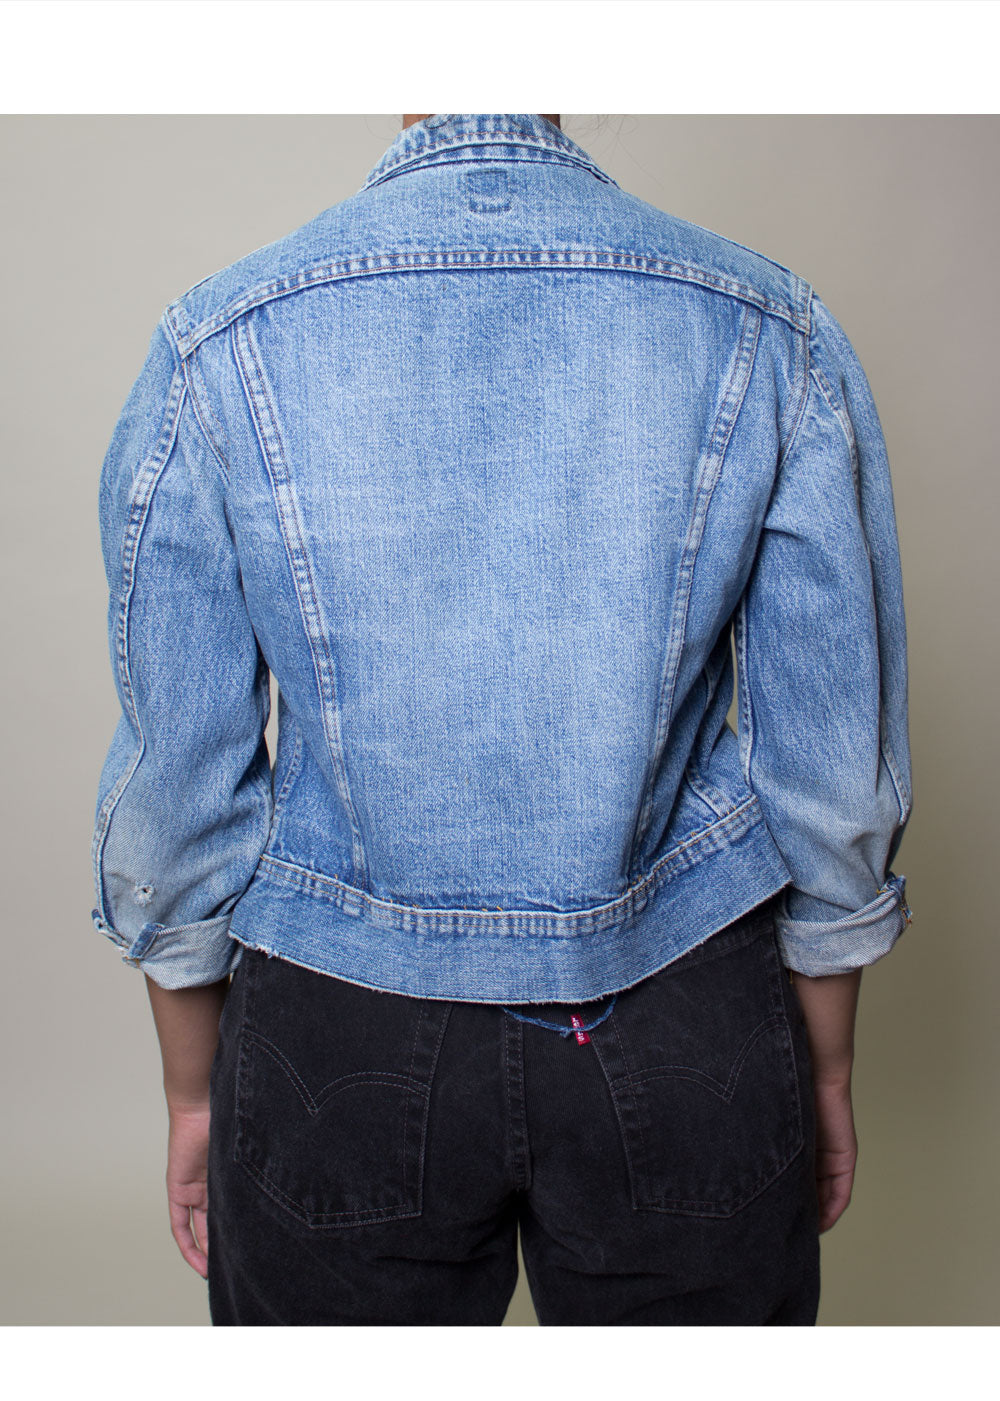 Preston Lee Denim Jacket